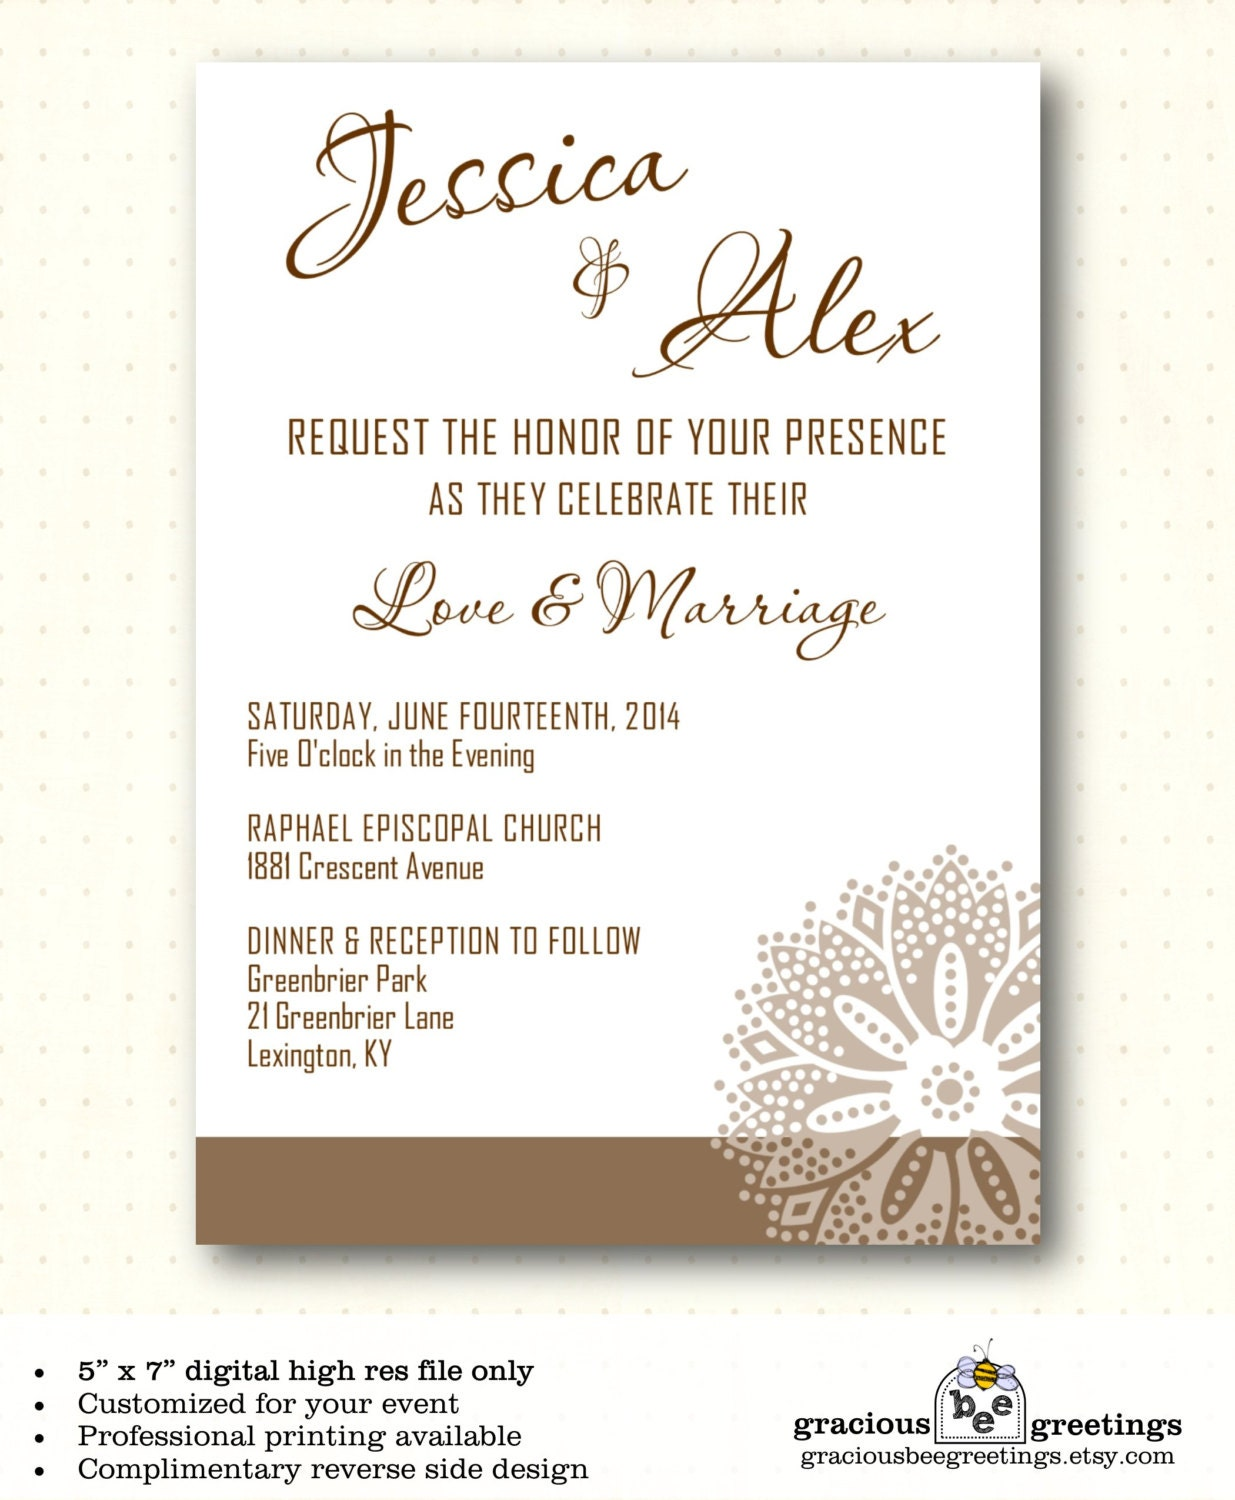 Informal wedding invitation email 28 images invitation material informal stopboris Image collections